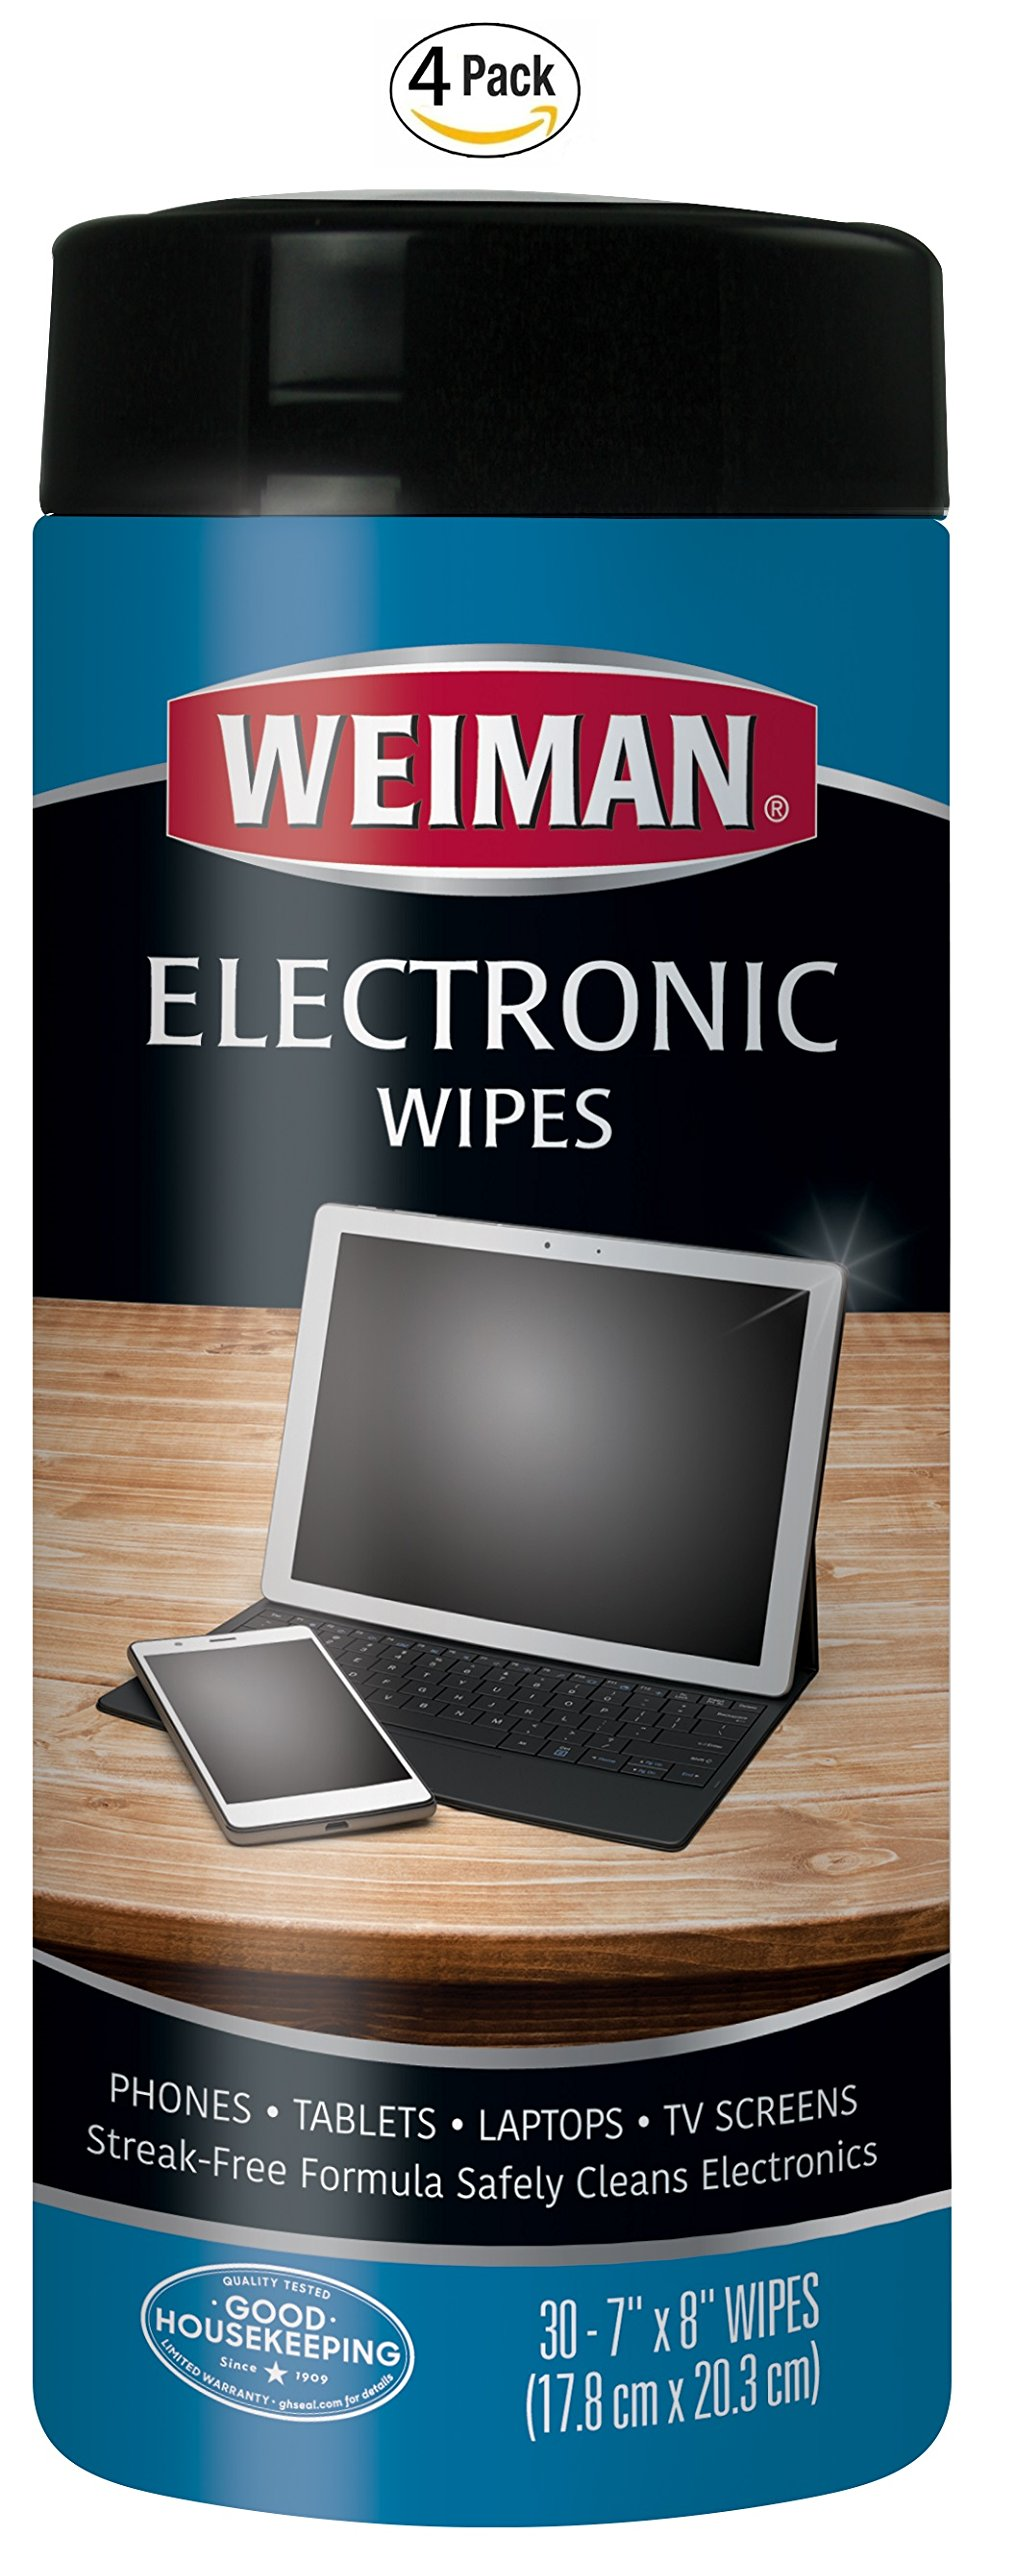 Weiman Electronic Screen Cleaner Wipes - 4 Pack - Safely Clean Your Laptop, Computer, TV, and All Electronic Equipment - Electronic Wipes - 30 Count